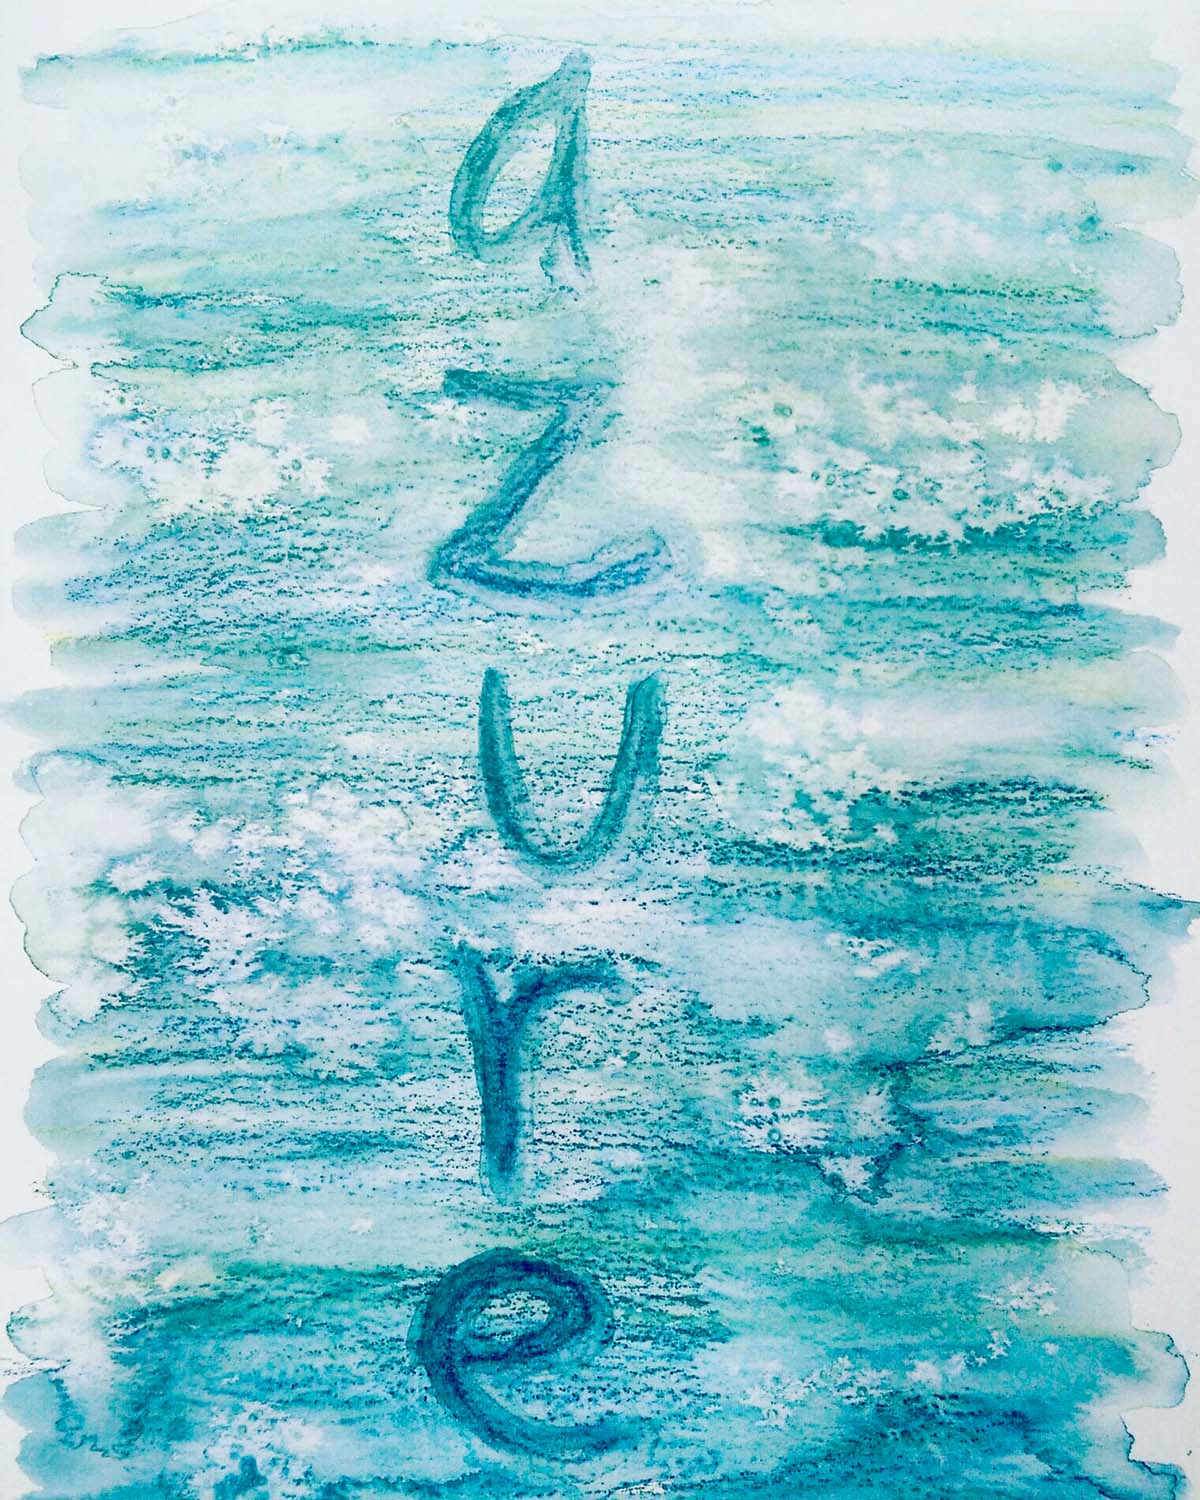 'Azure' in watercolour